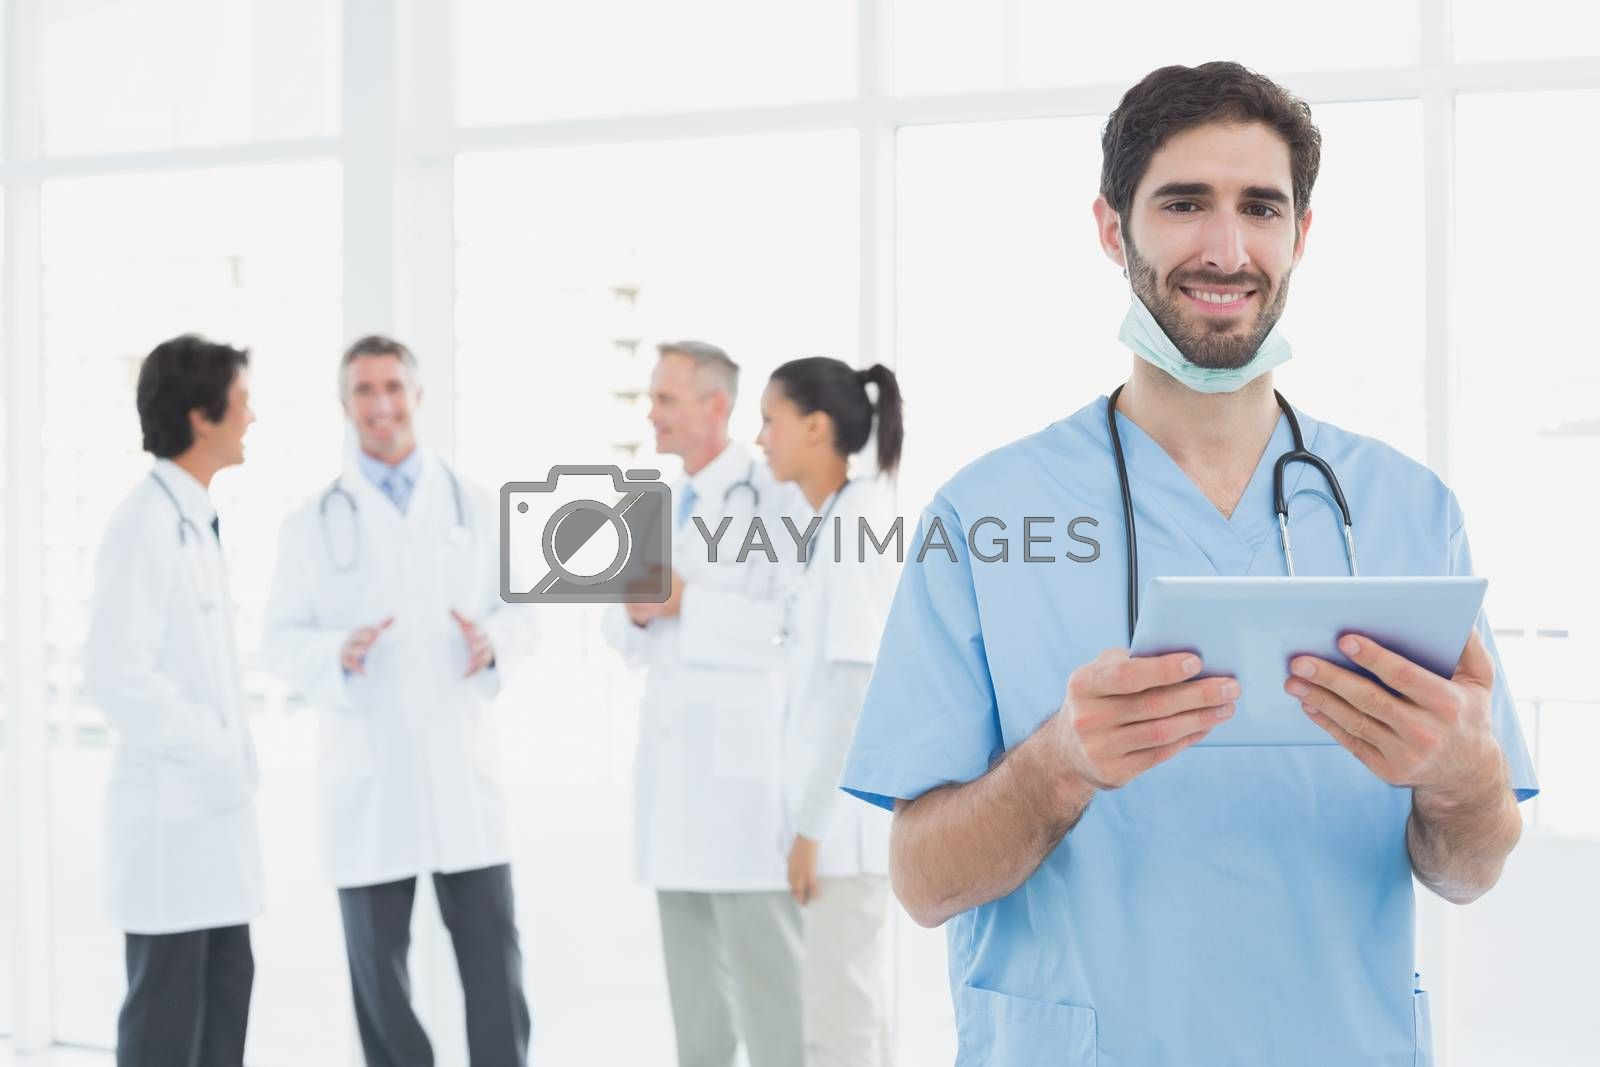 Smiling doctor with a tablet in front of doctors